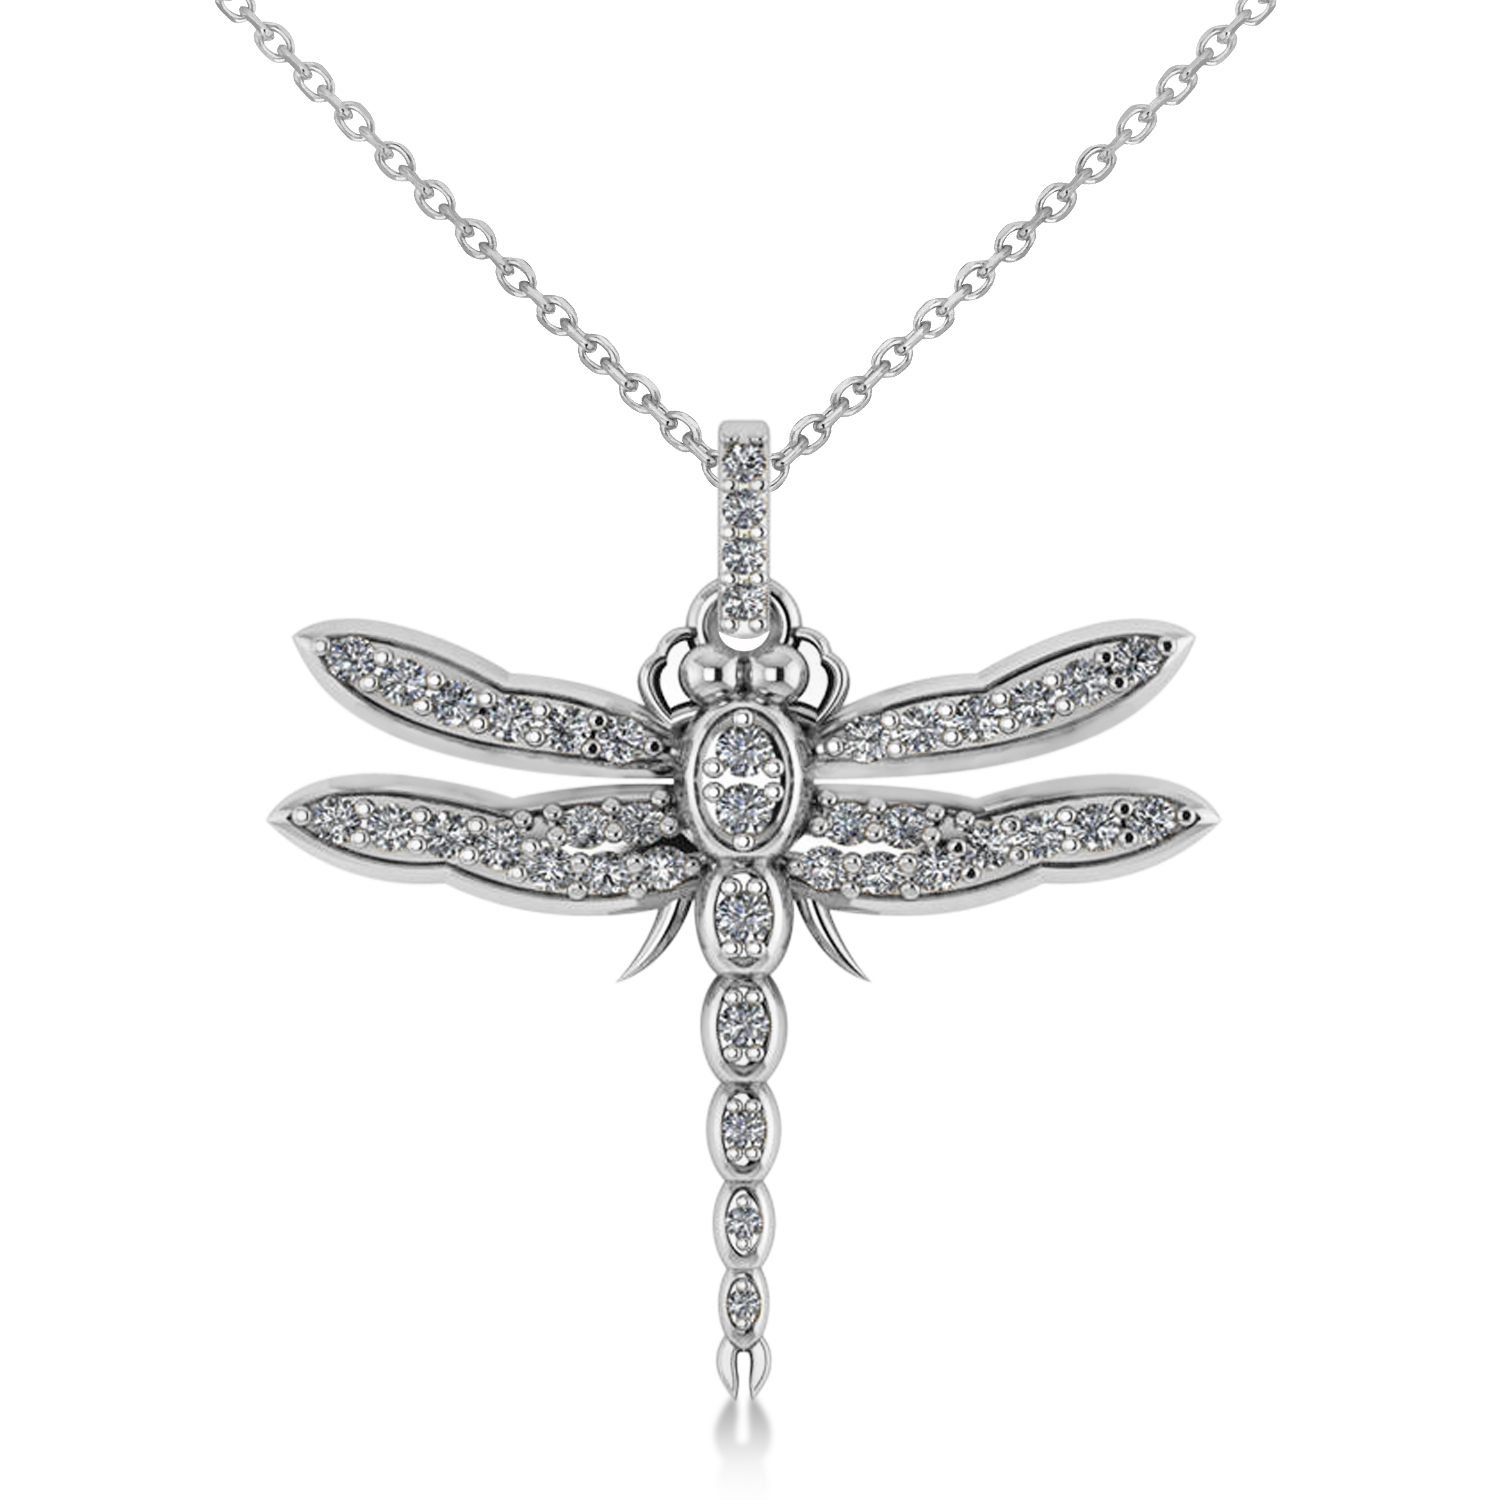 76dc54ef2 Dragonfly Insect Diamond Pendant Necklace 14k White Gold 0.59ct - IN951